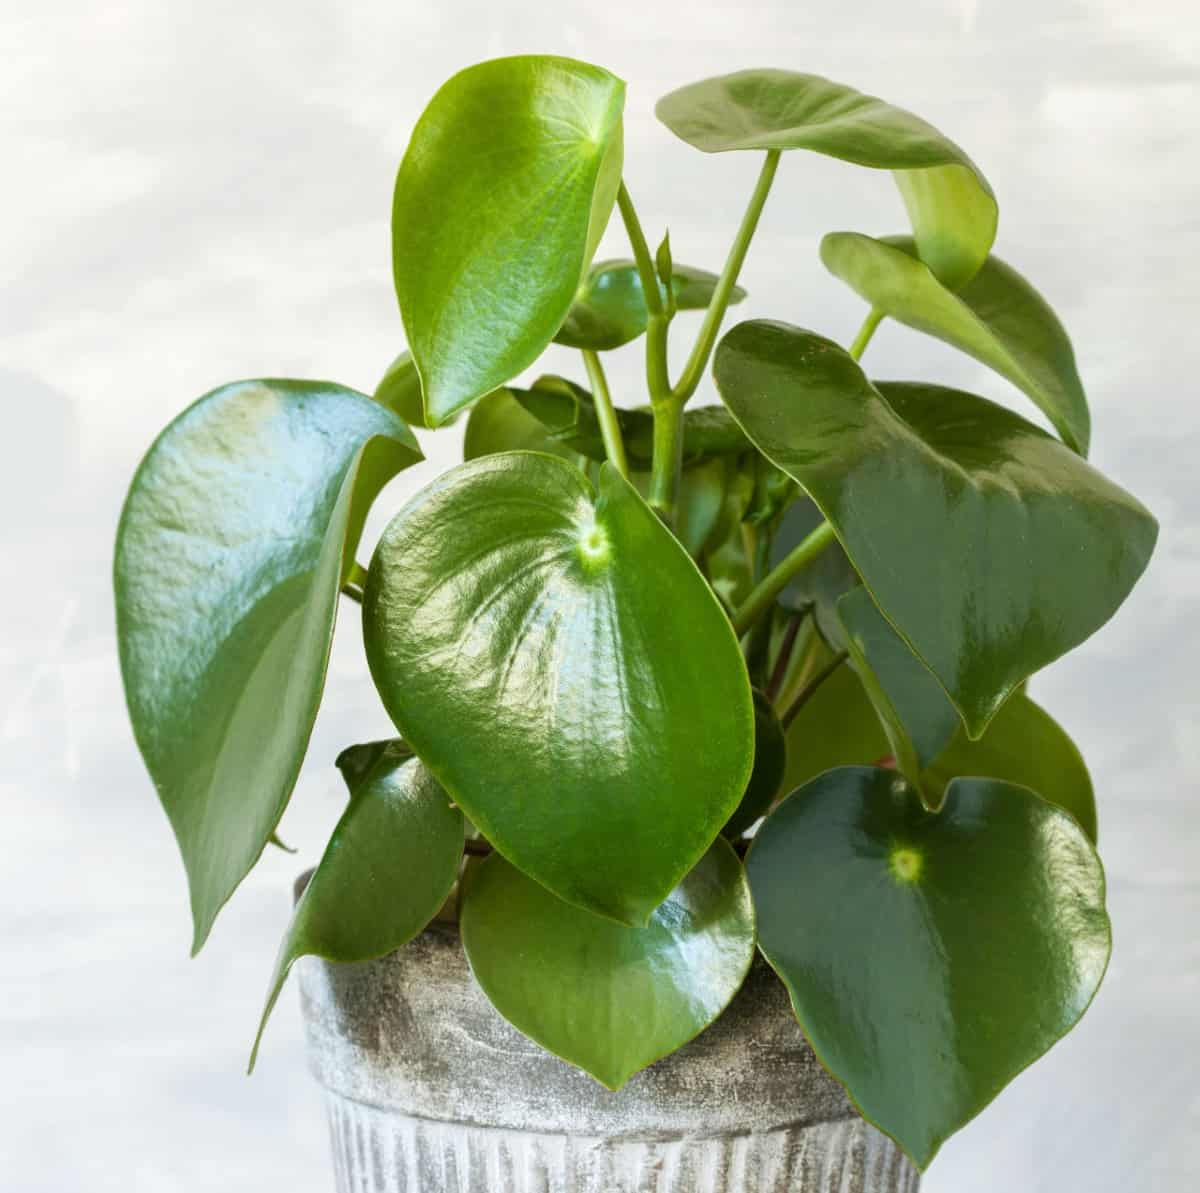 peperomia is a low maintenance tropical indoor plant